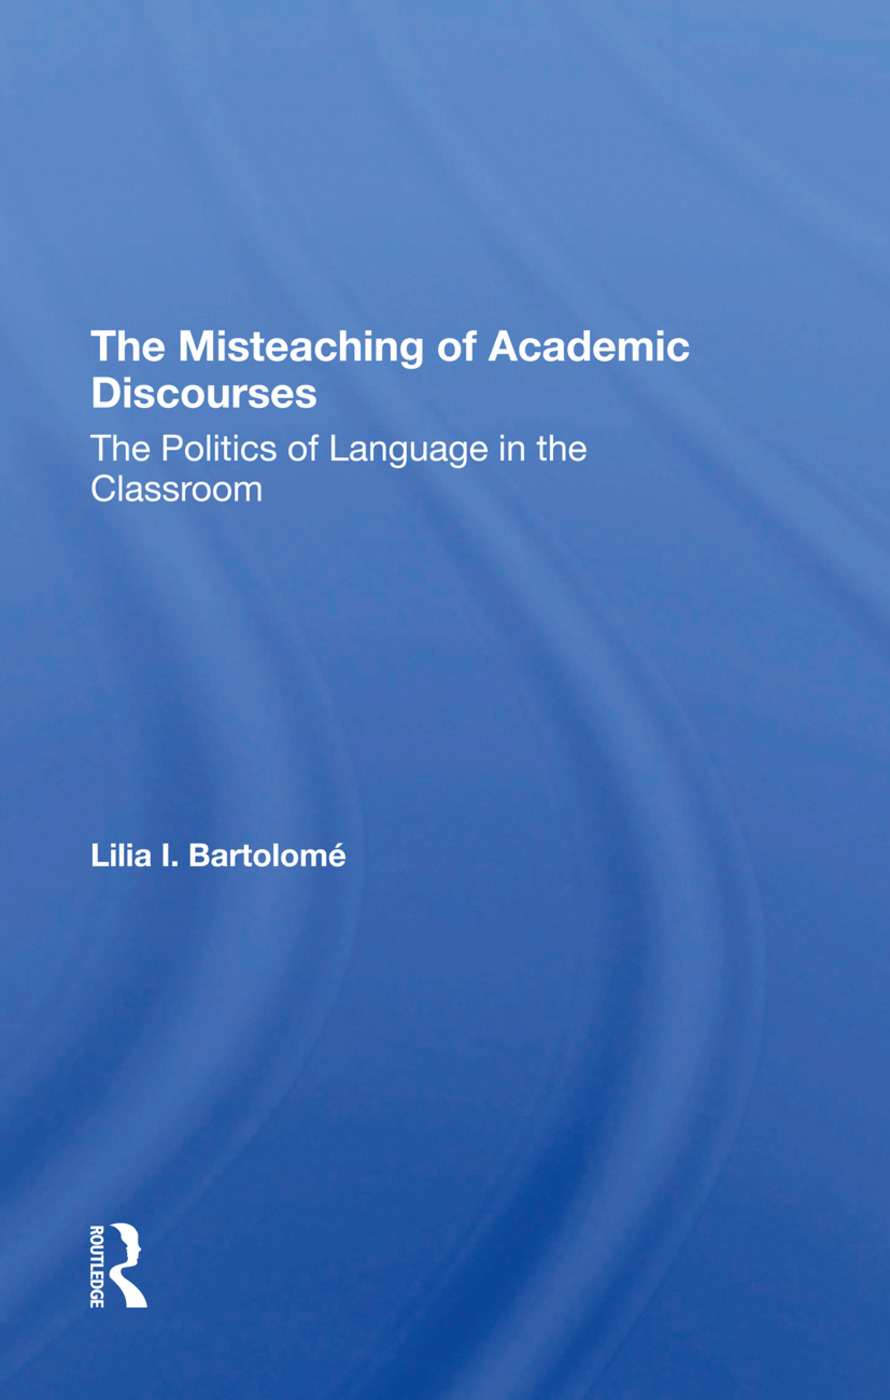 The Misteaching Of Academic Discourses